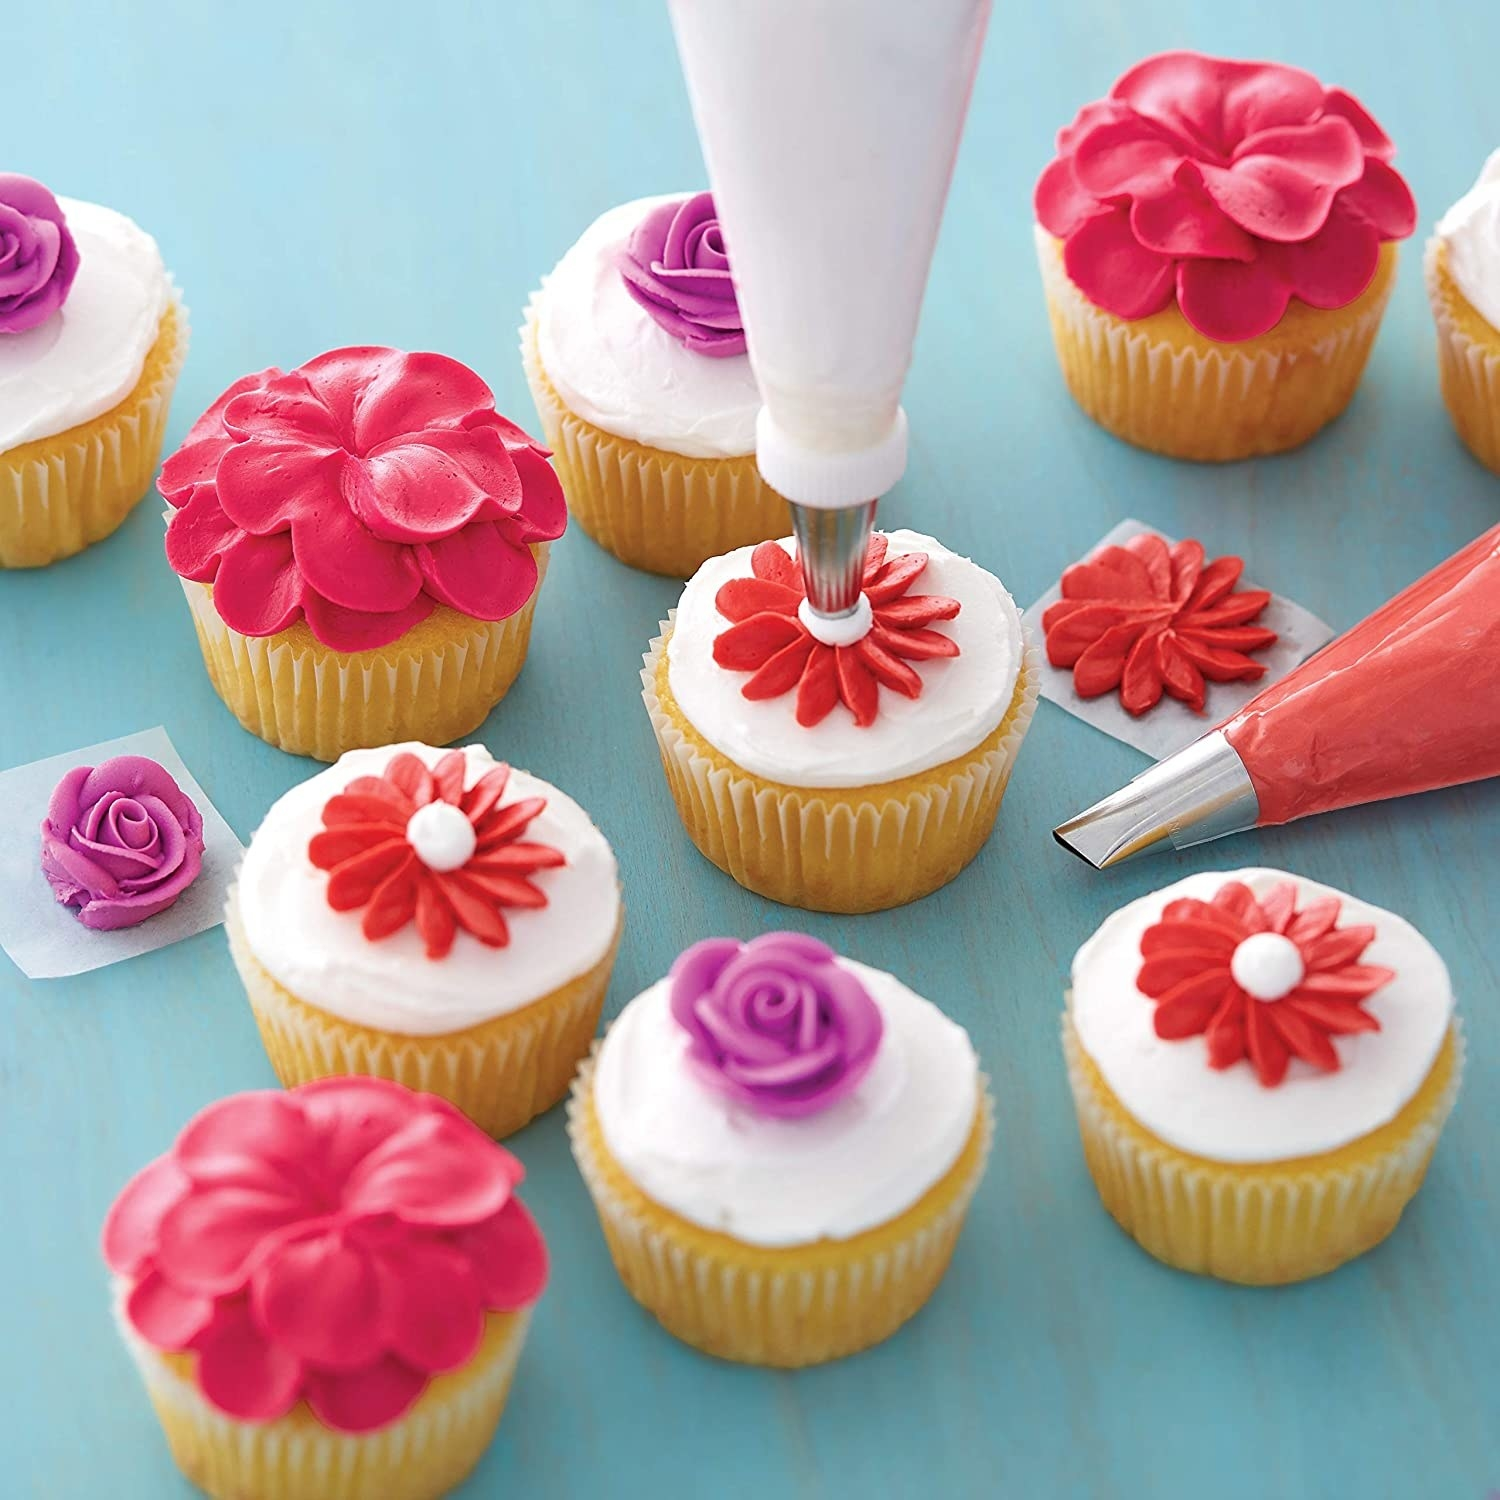 A person decorating a batch of cupcakes using a plastic decorating bag filled with icing